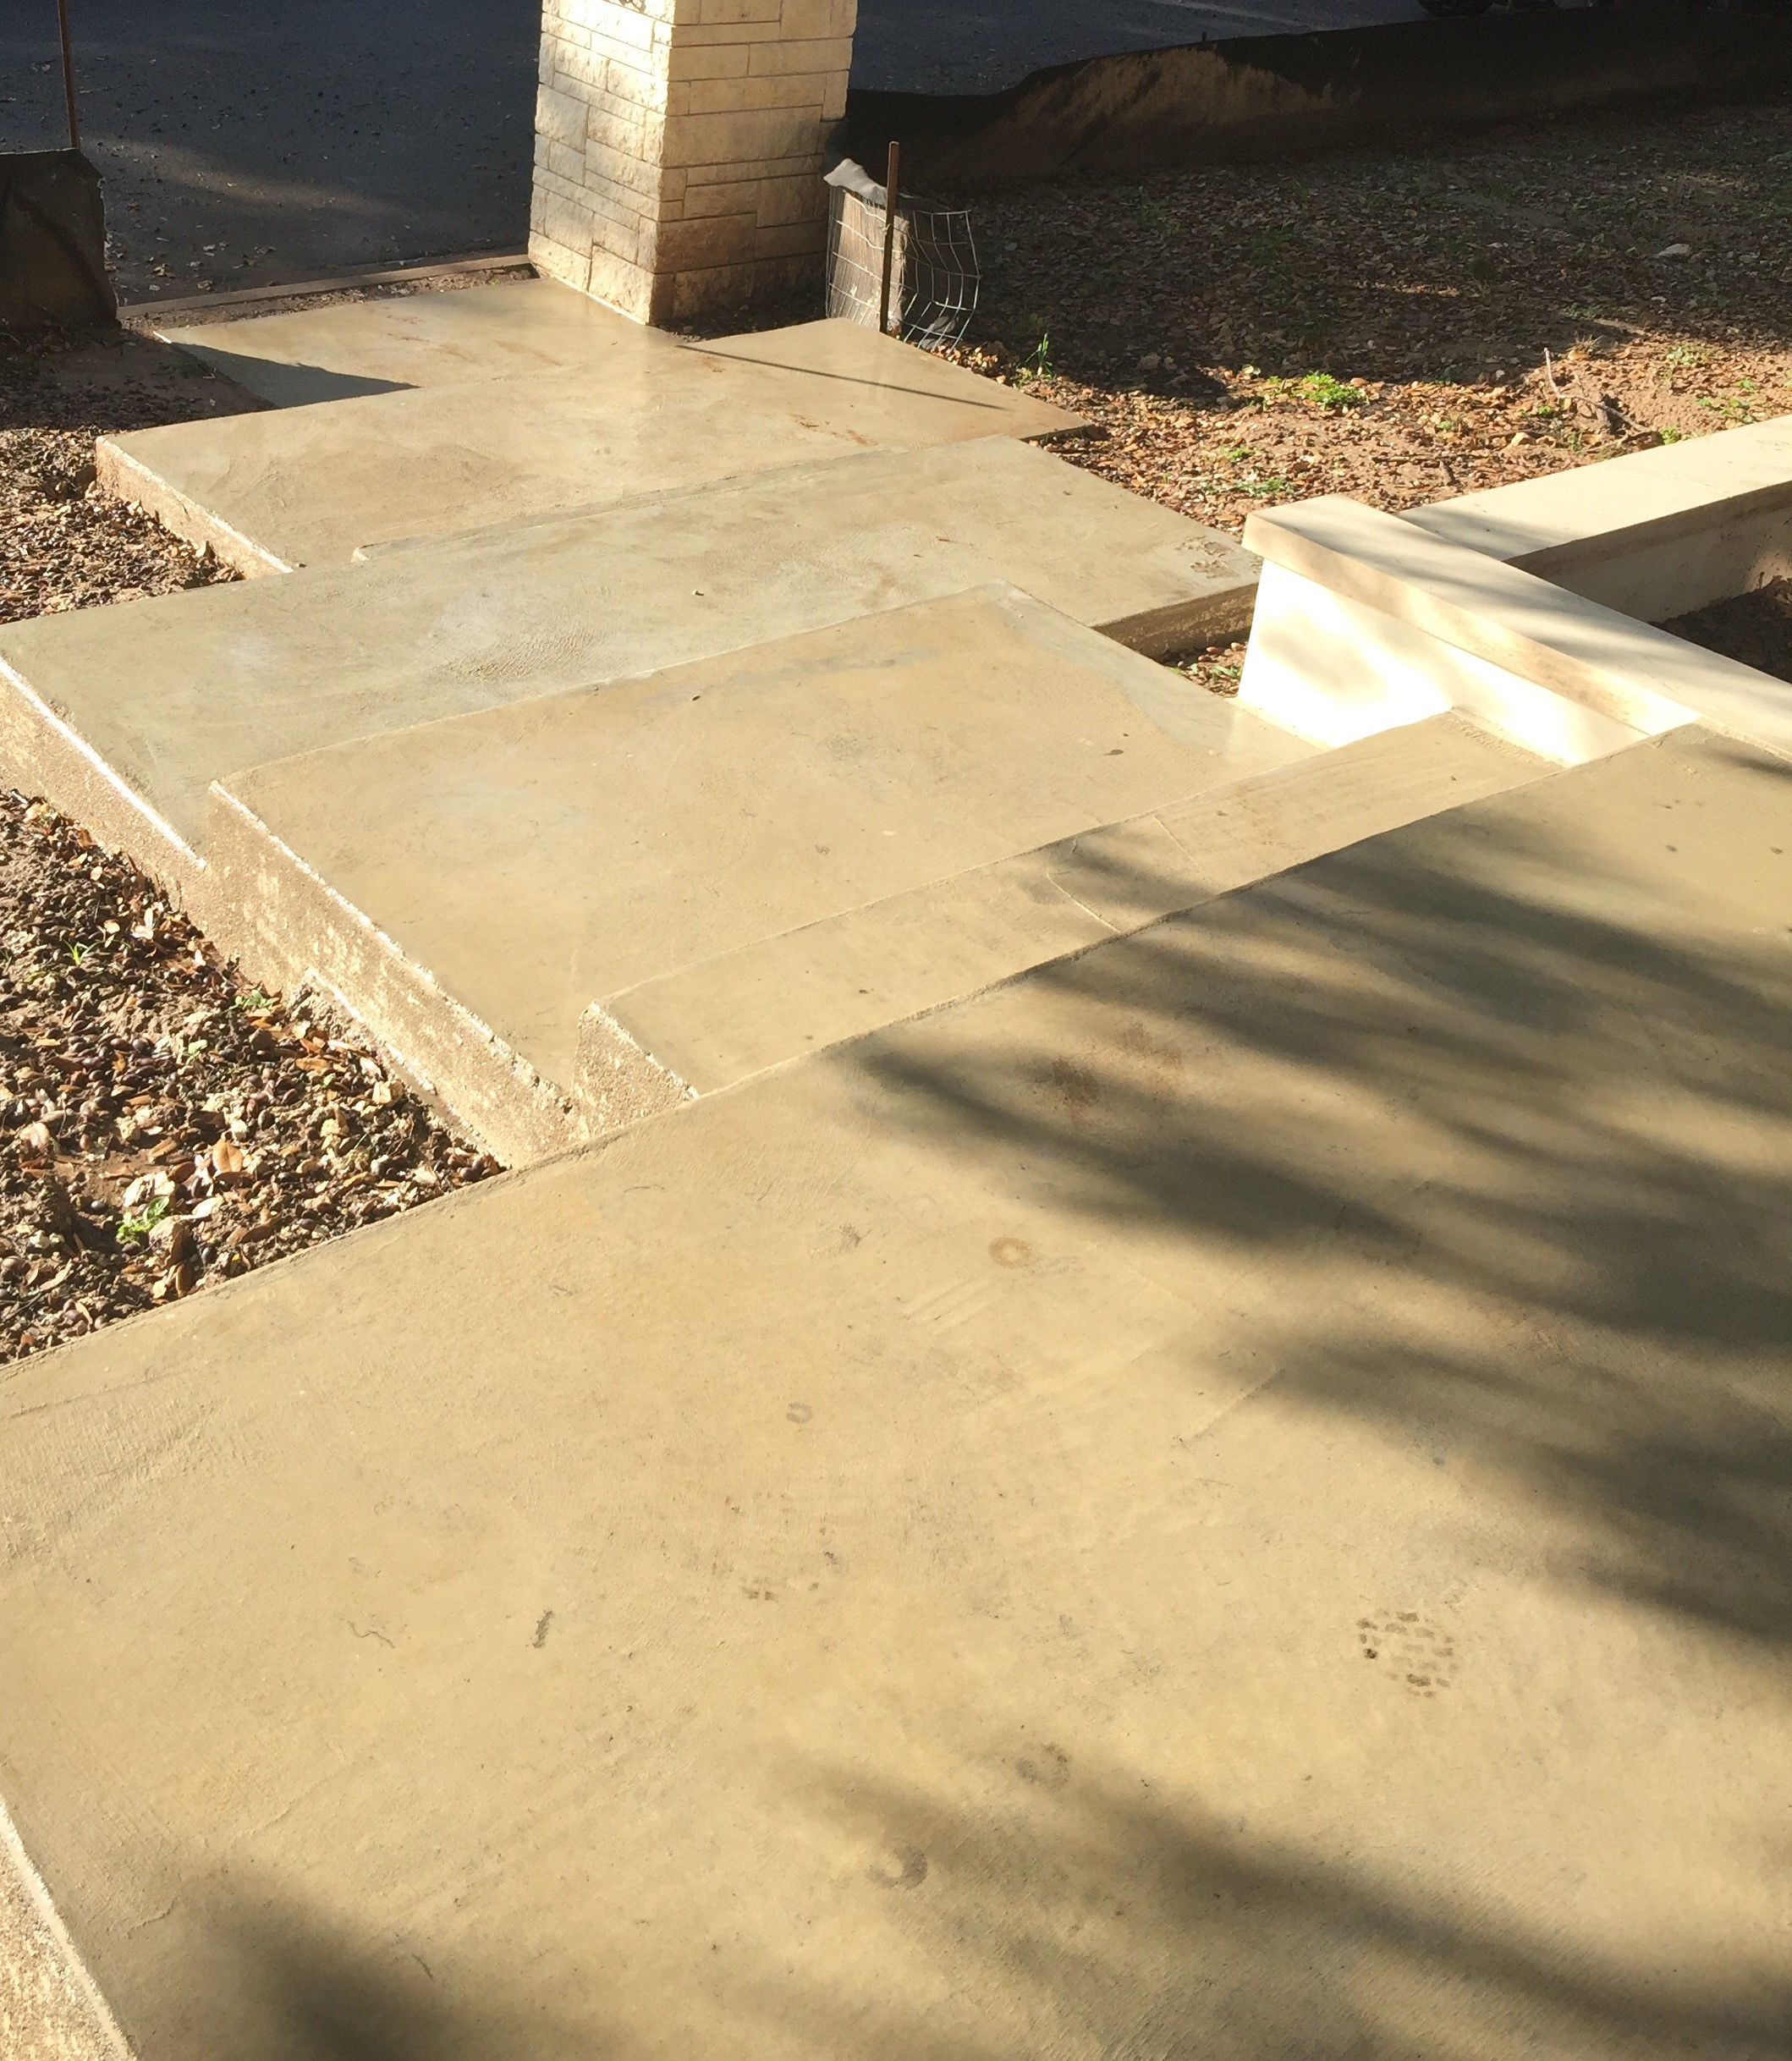 How to remove acorn stains from concrete